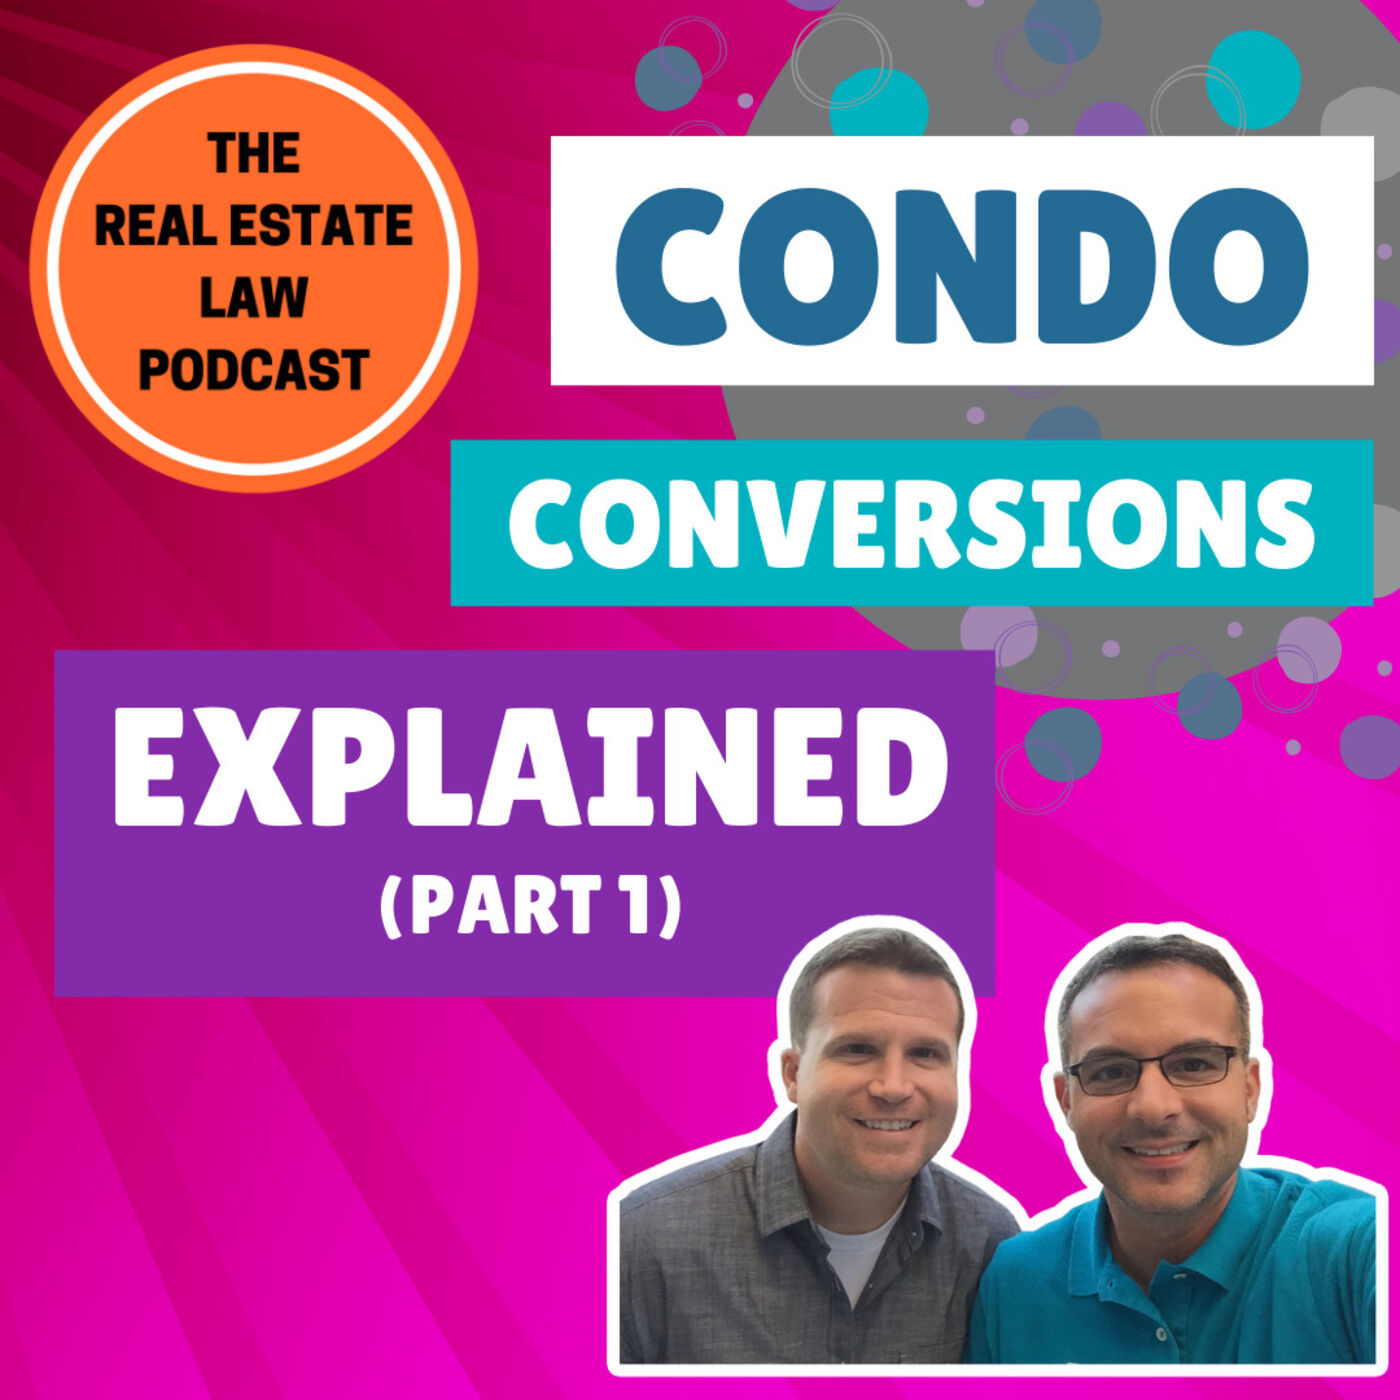 11 - Condo Conversions Explained - Everything You Need To Know, Part 1 of 2